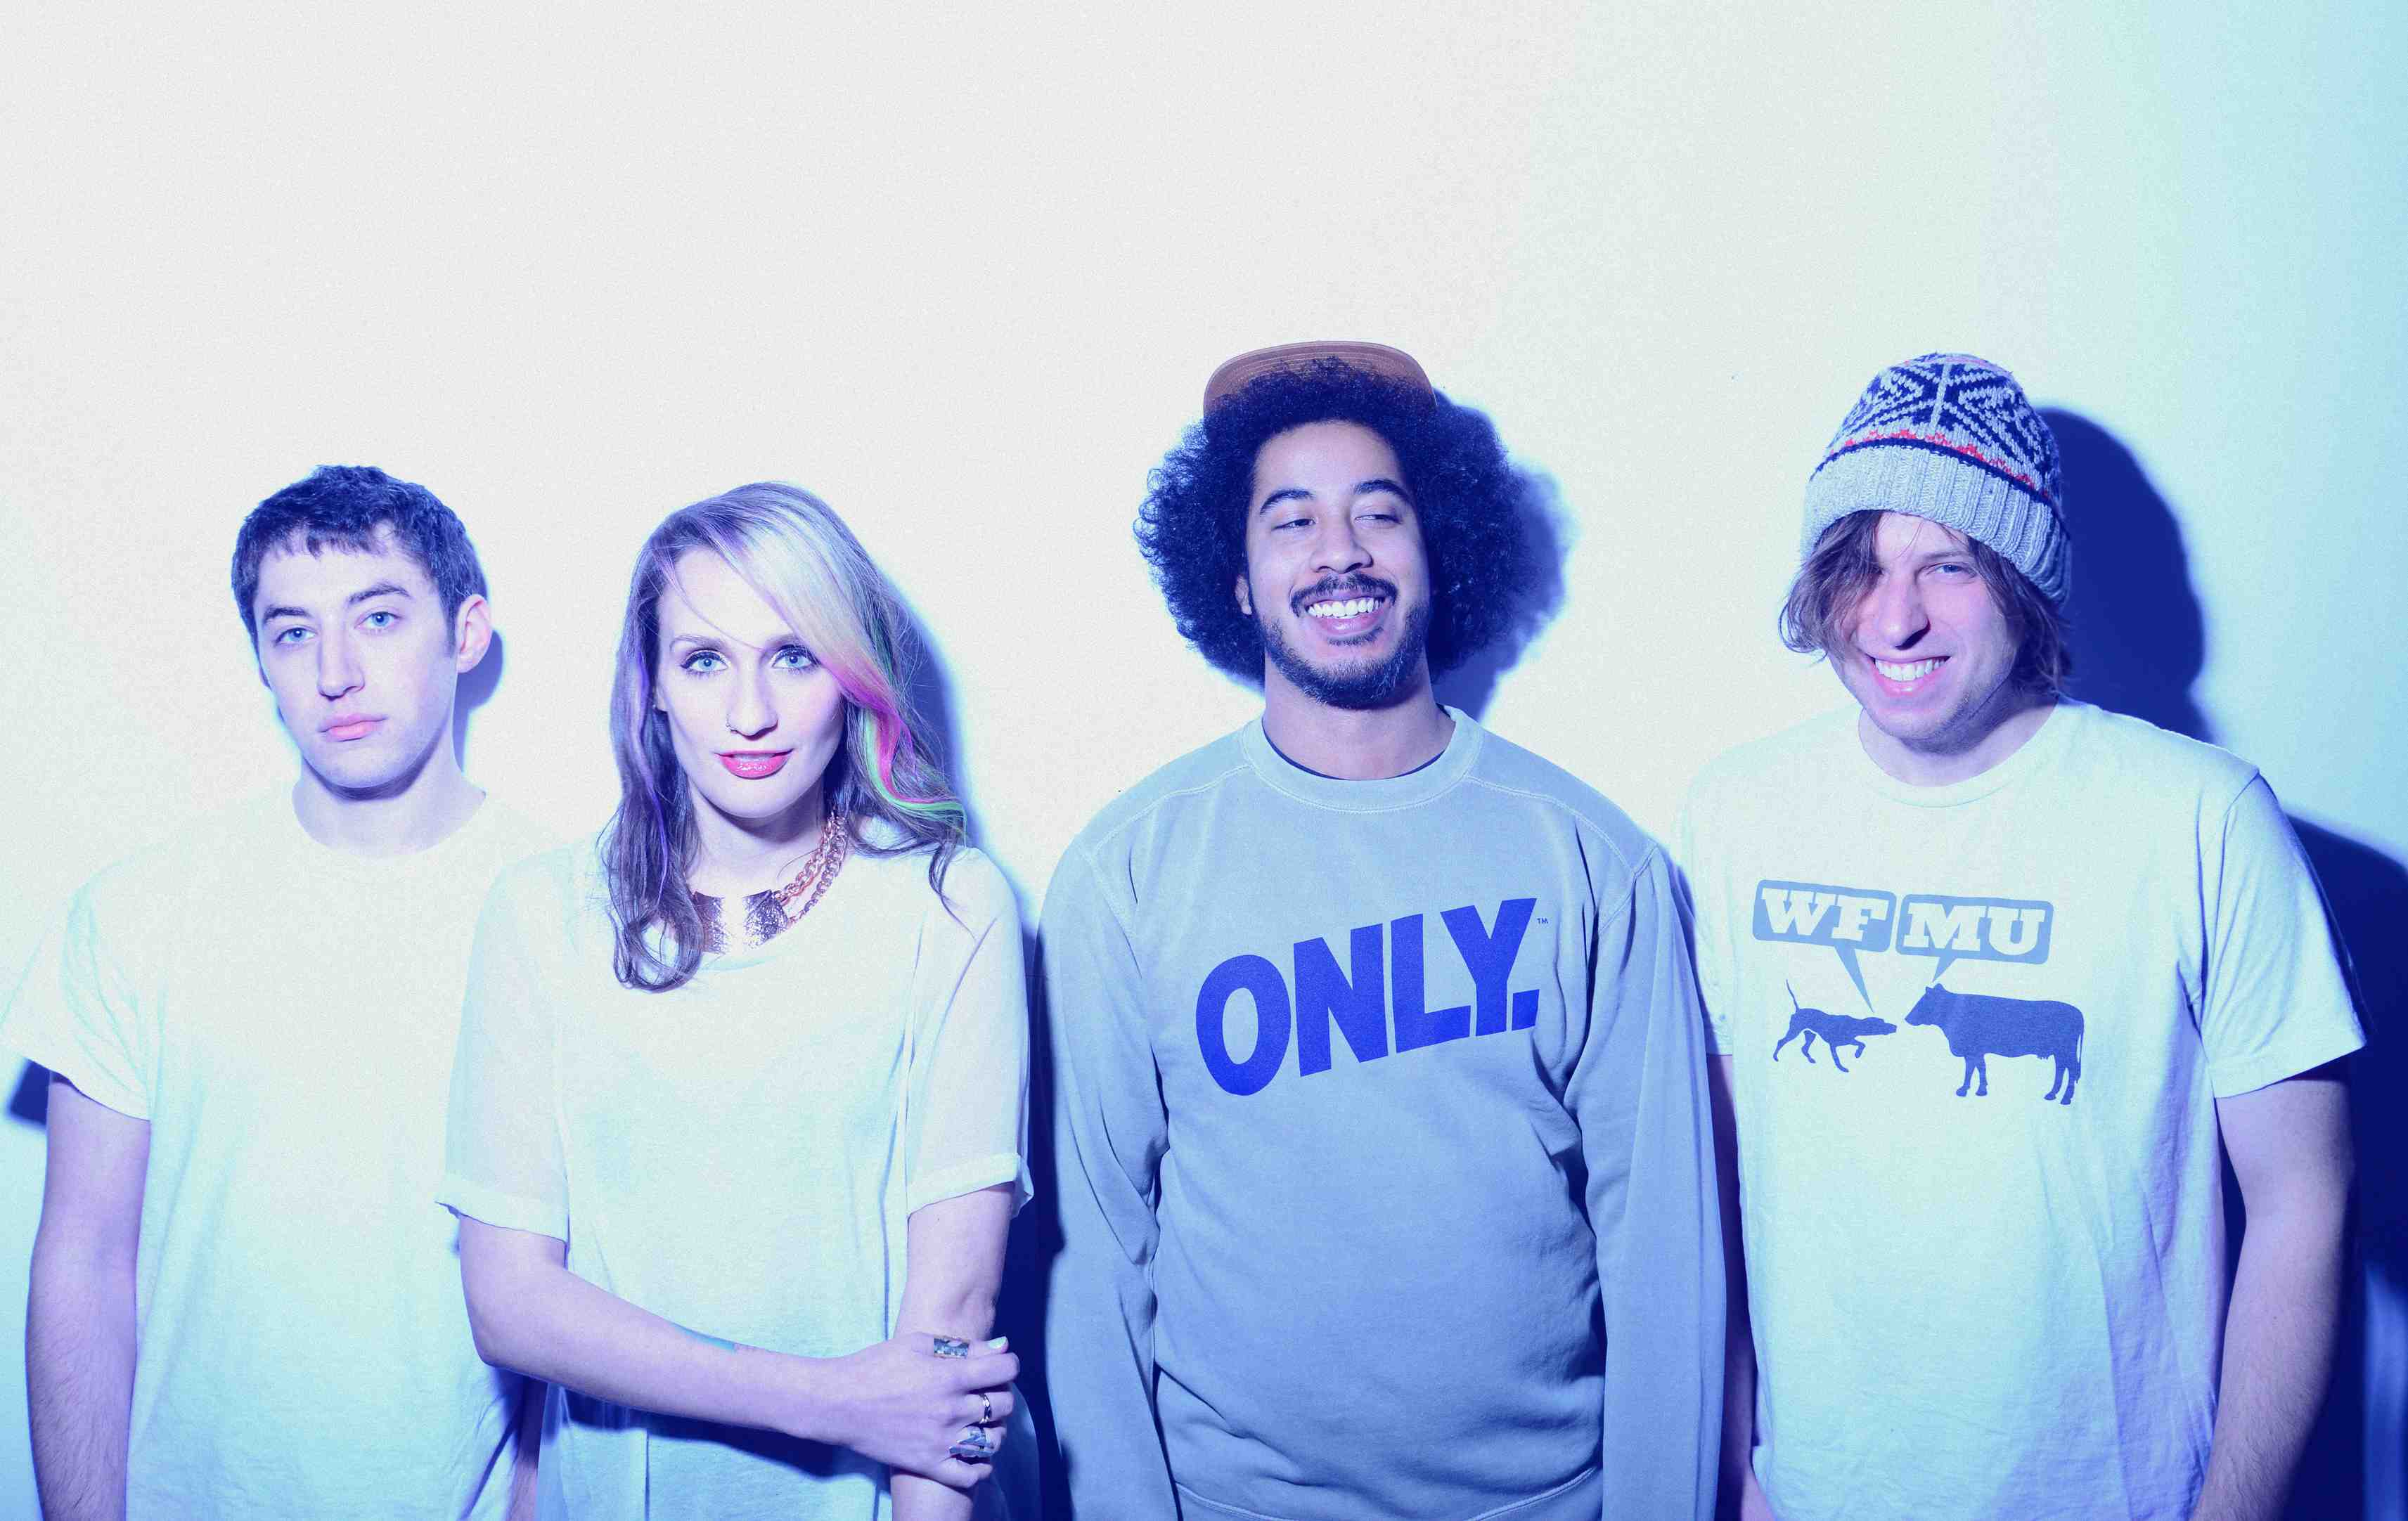 Speedy Ortiz 2 by Shervin Lainez LOW